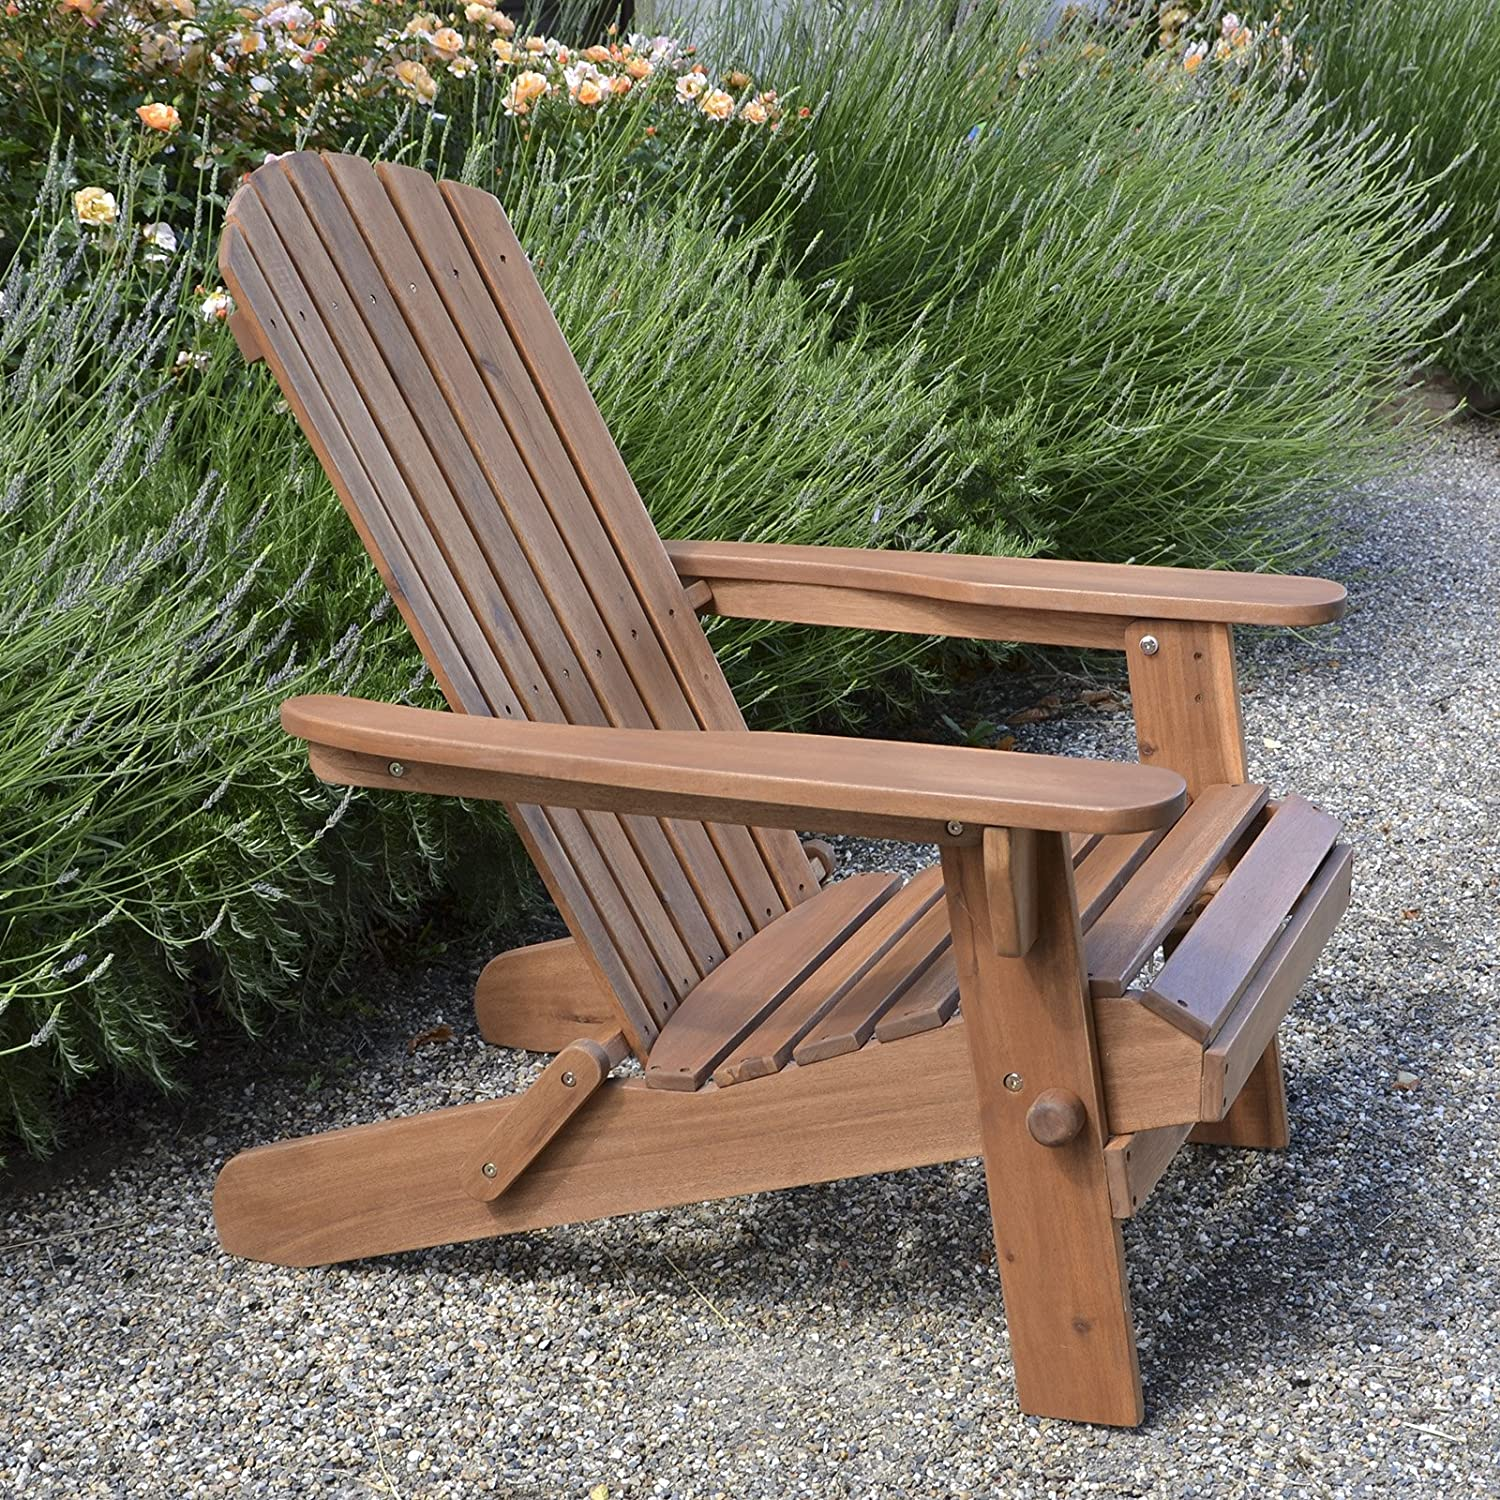 Review of Plant Theatre Adirondack Folding Hardwood Chair